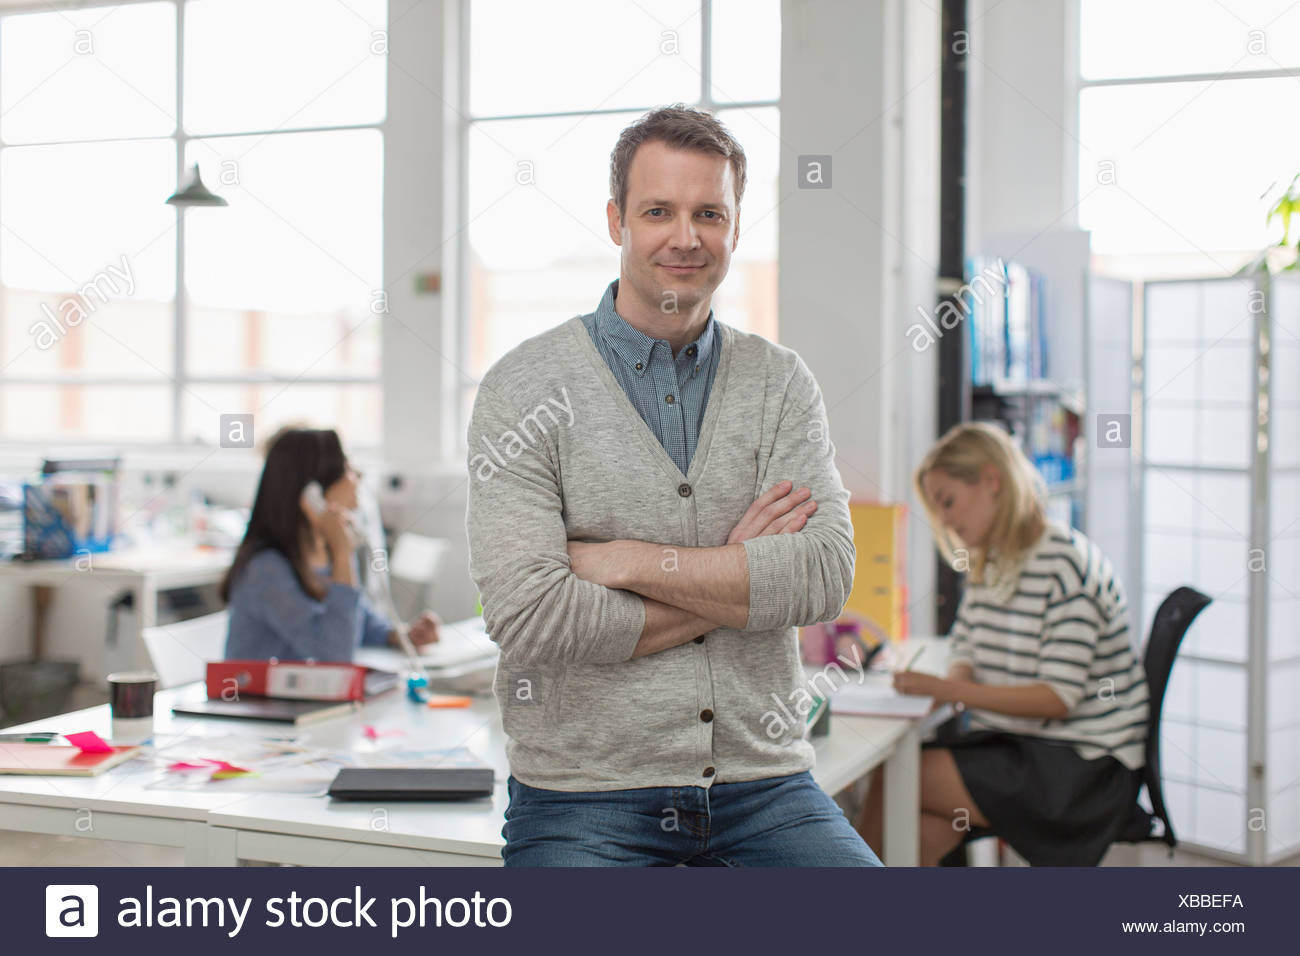 Mature man sitting on desk and smiling in creative office, portrait - Stock Image